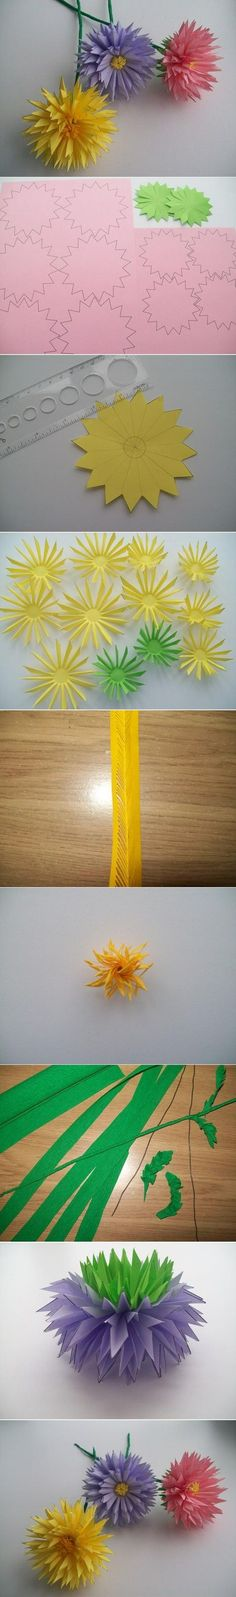 This is a low cost solution to having beautiful flowers at hand . You can do a bouquet in a vase or Decorate gift package. They are very easy to make and look amazing when completed! What you need Colored soft papers Pen Scissor Ruler Glue Pinterest Facebook Google+ reddit StumbleUpon Tumblr